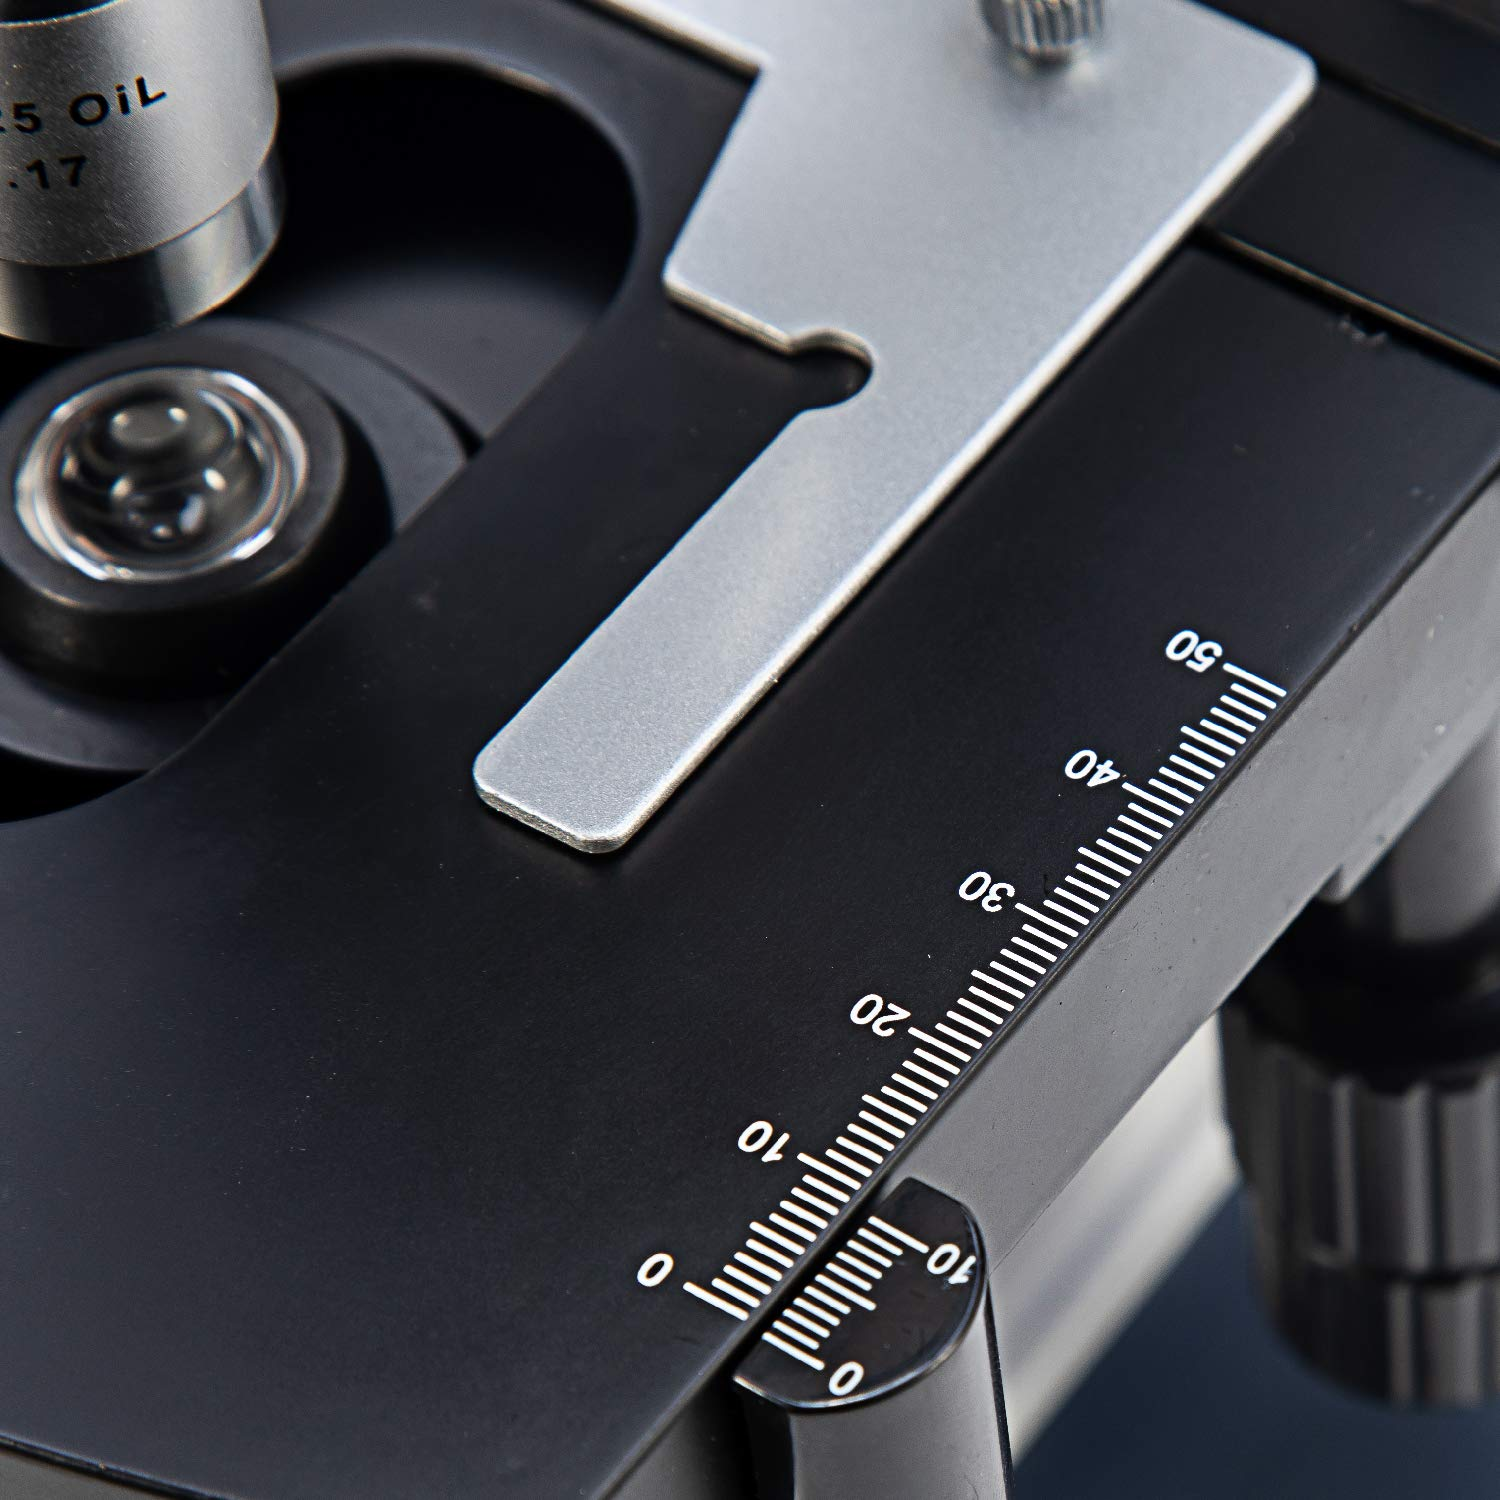 Swift SW350B 40X-2500X Magnification, Siedentopf Binocular Head, Research-Grade Compound Lab Microscope with Wide-Field 10X and 25X Eyepieces, Mechanical Stage, Abbe Condenser by SWIFT (Image #8)